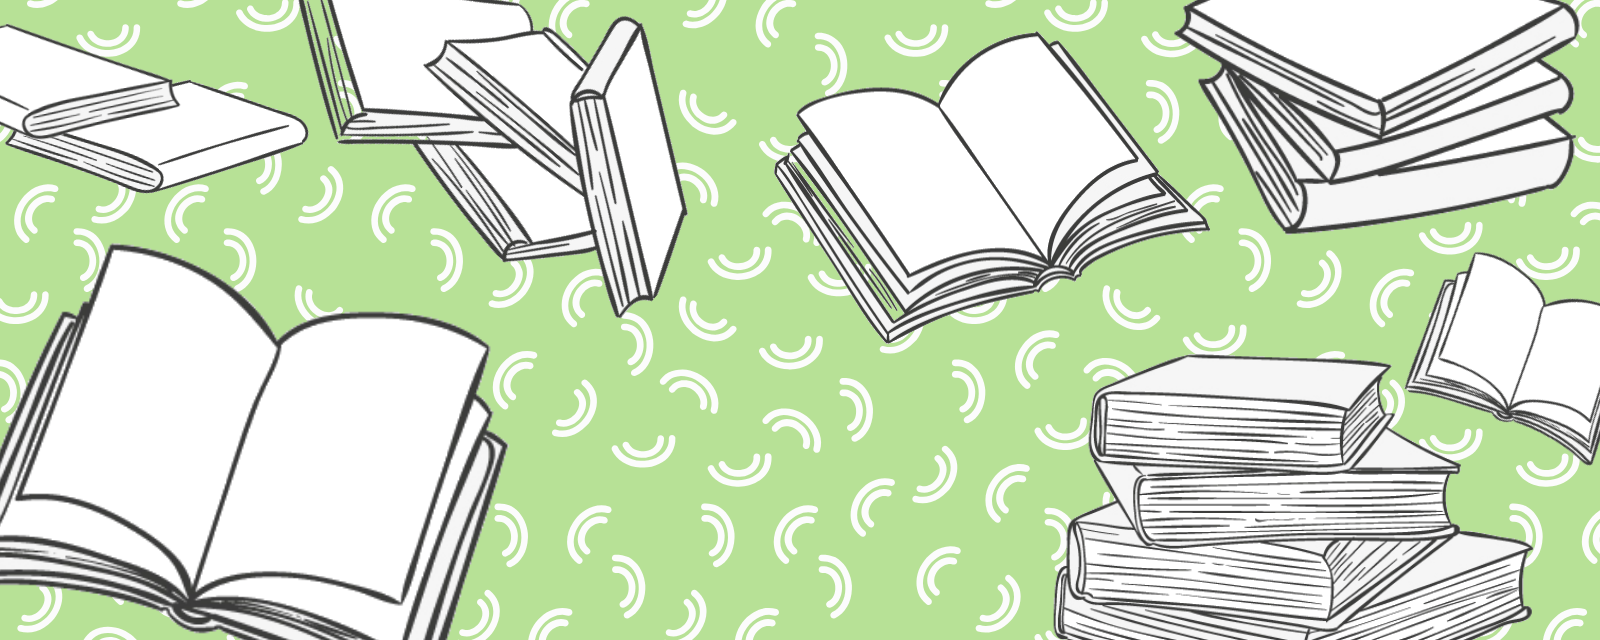 drawn books on a green background